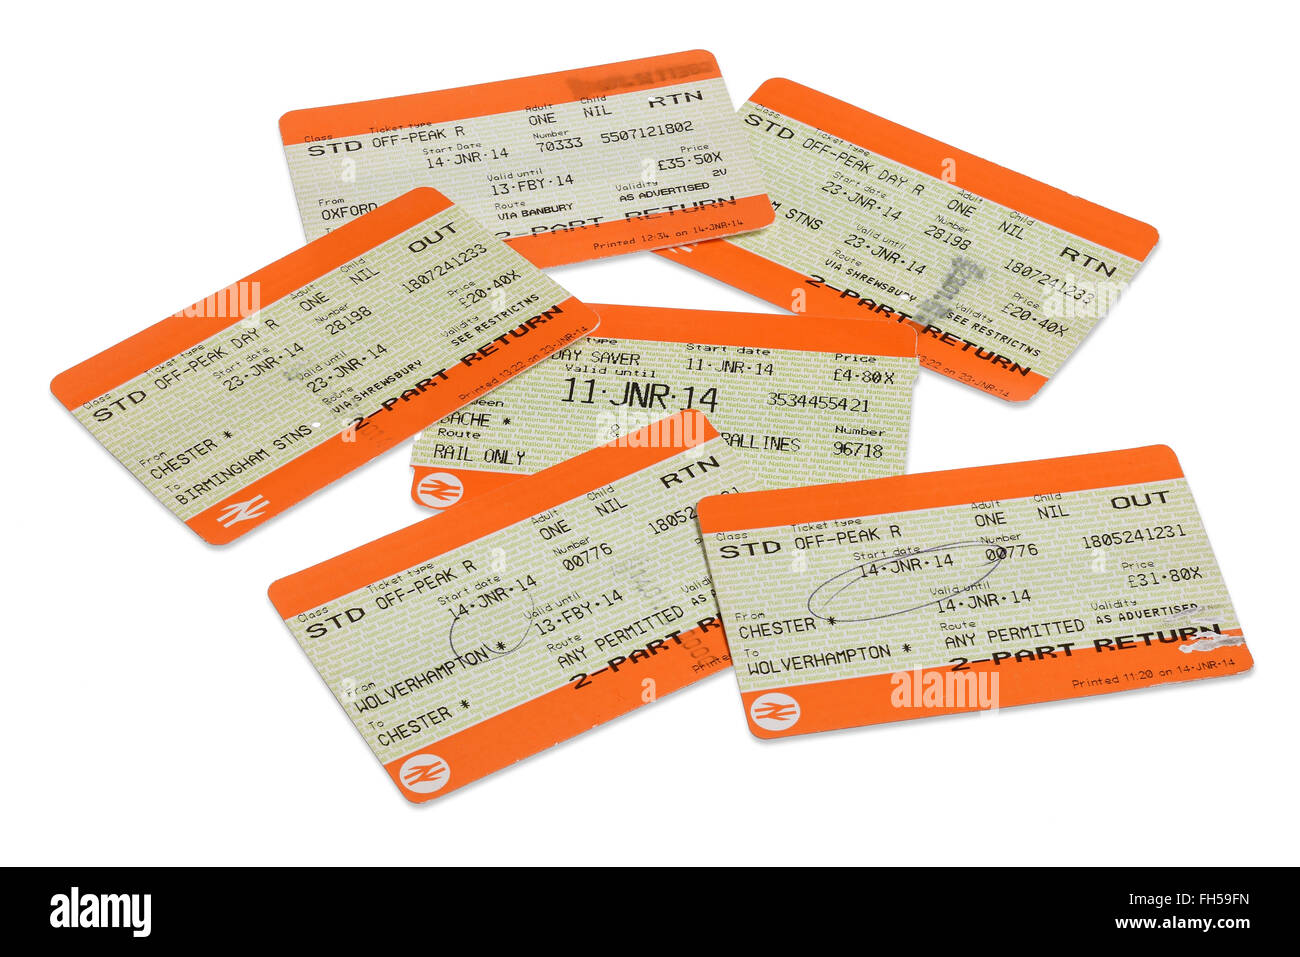 Collection of used tickets for UK rail journeys - Stock Image